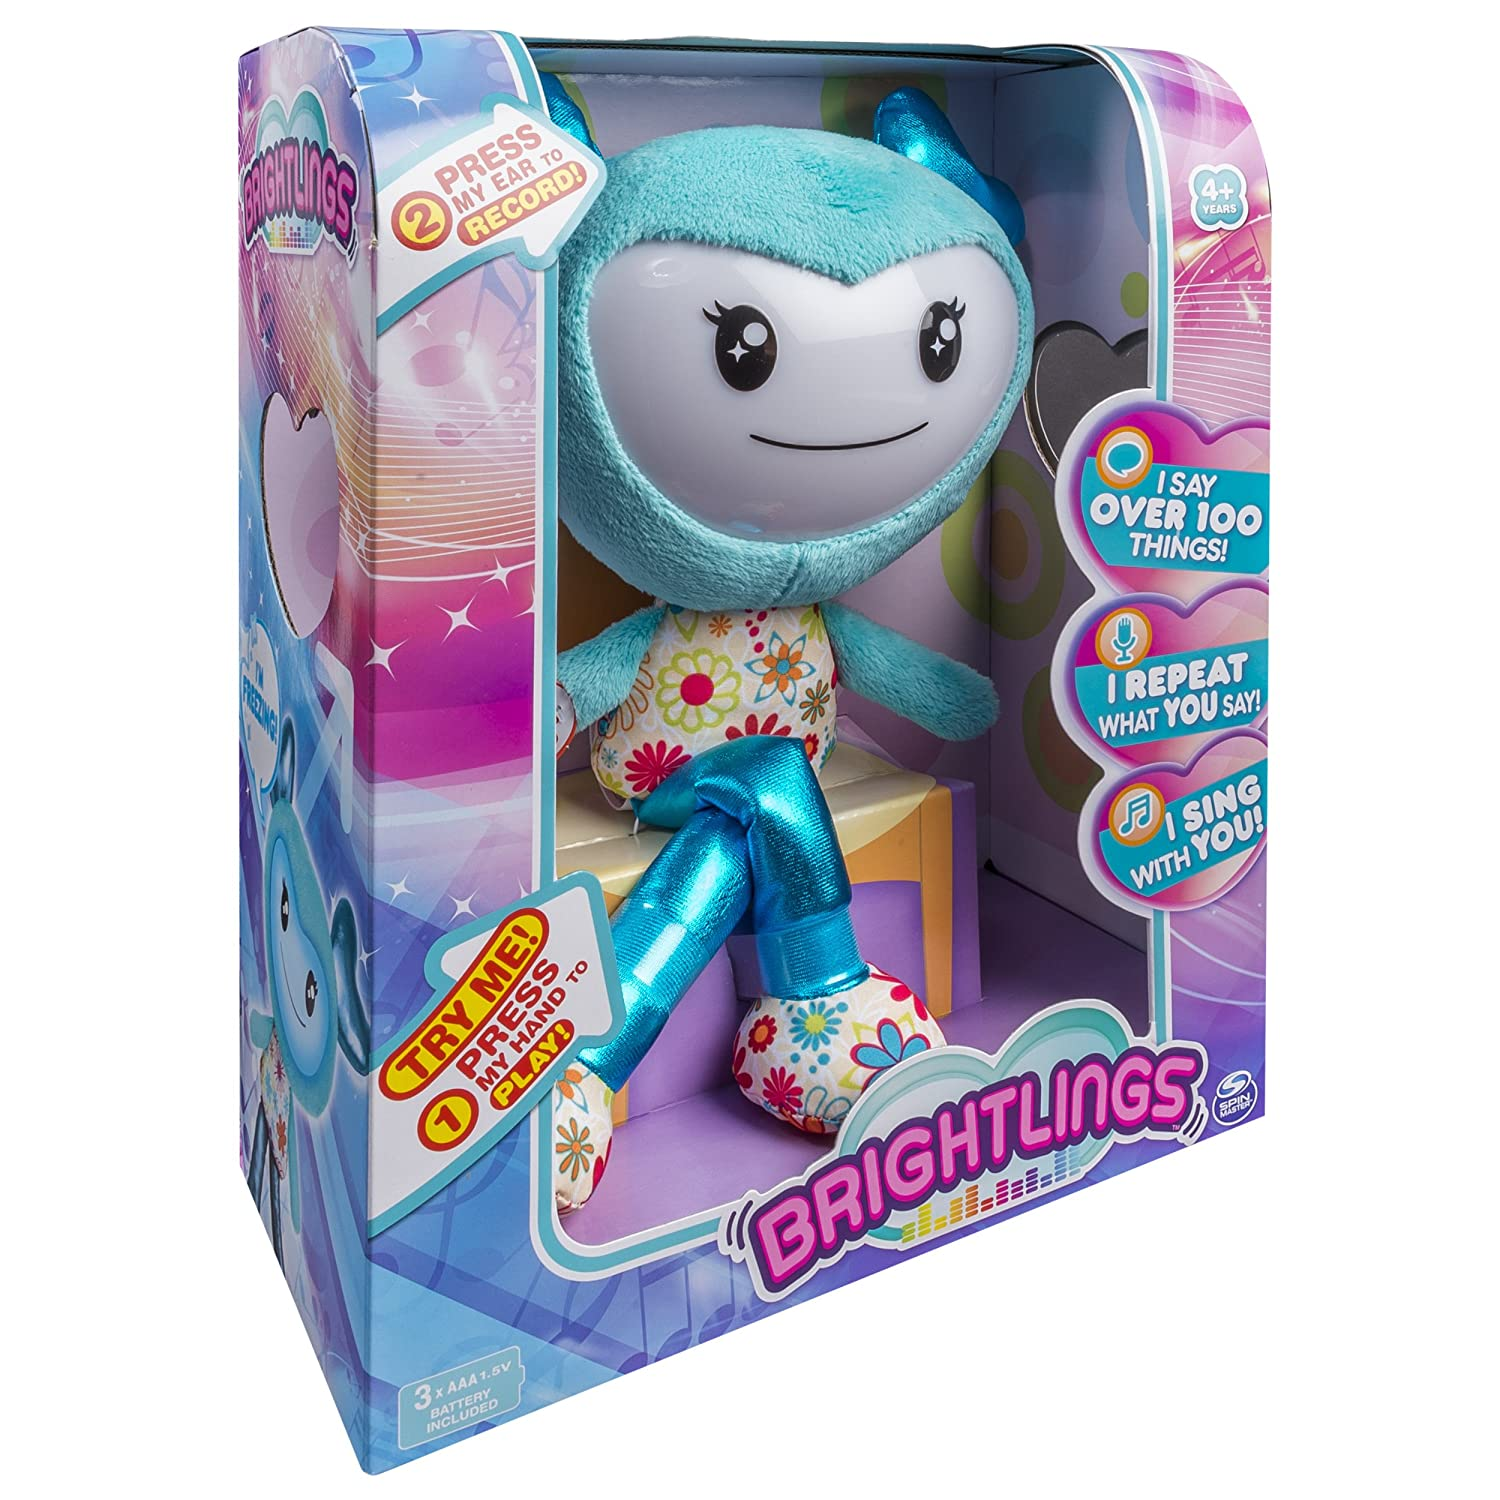 Brightlings, Interactive Singi...